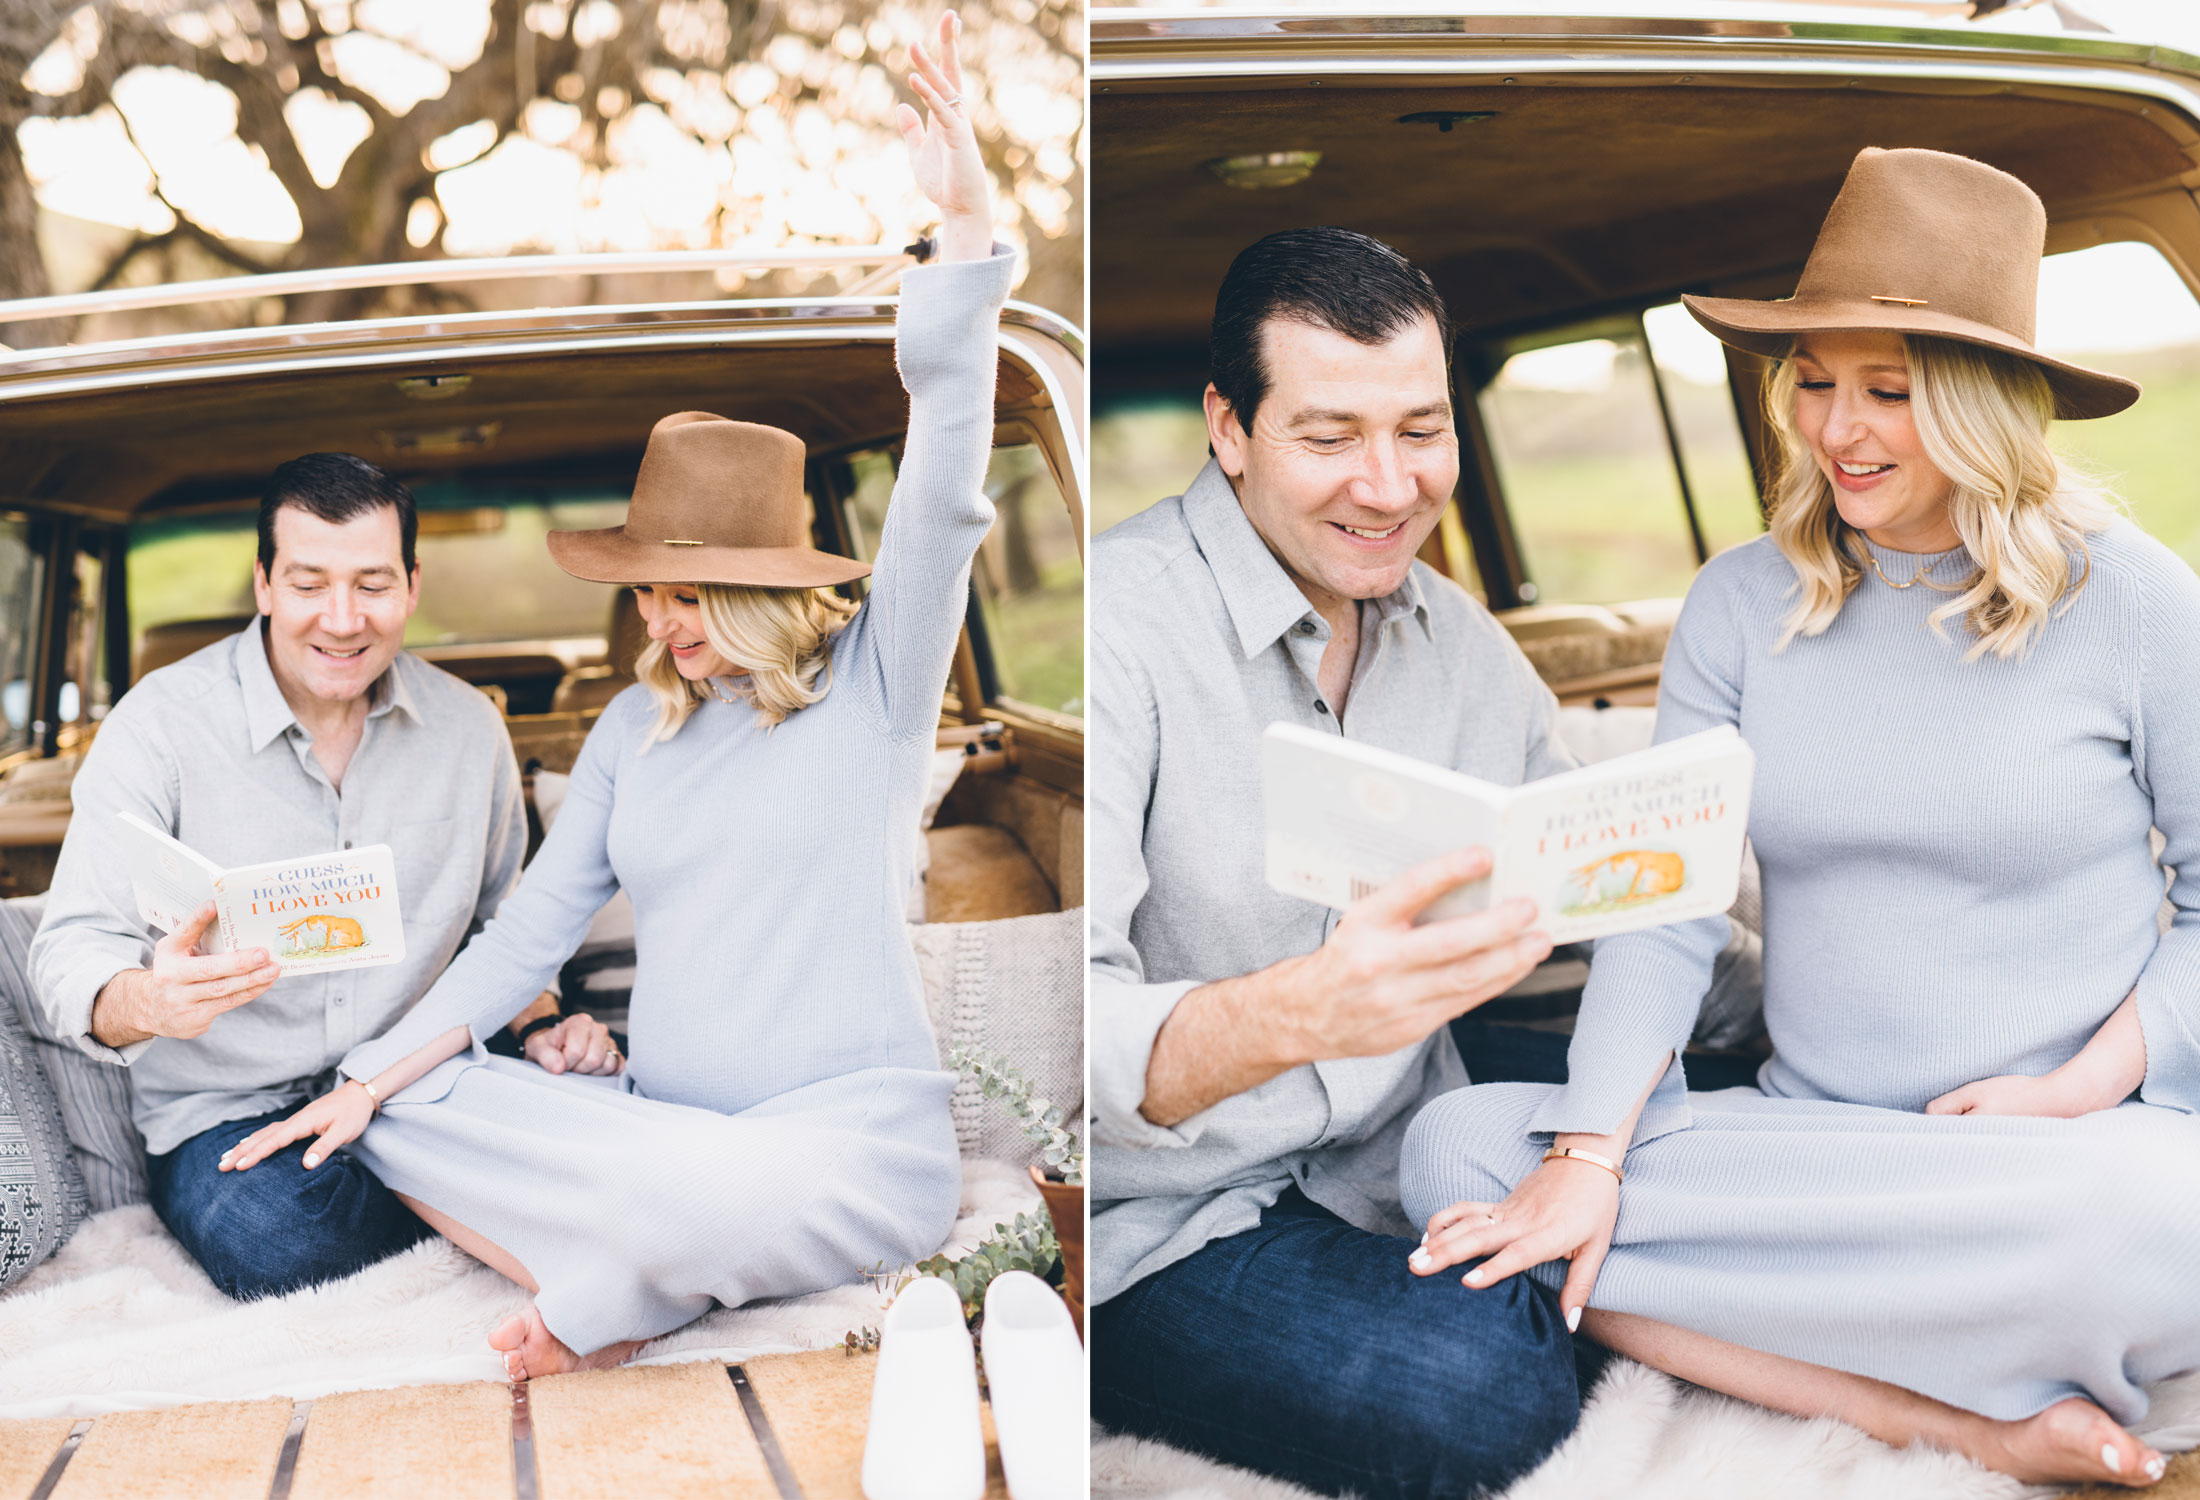 classic-car-idea-with-props-maternity-photoshoot.jpg